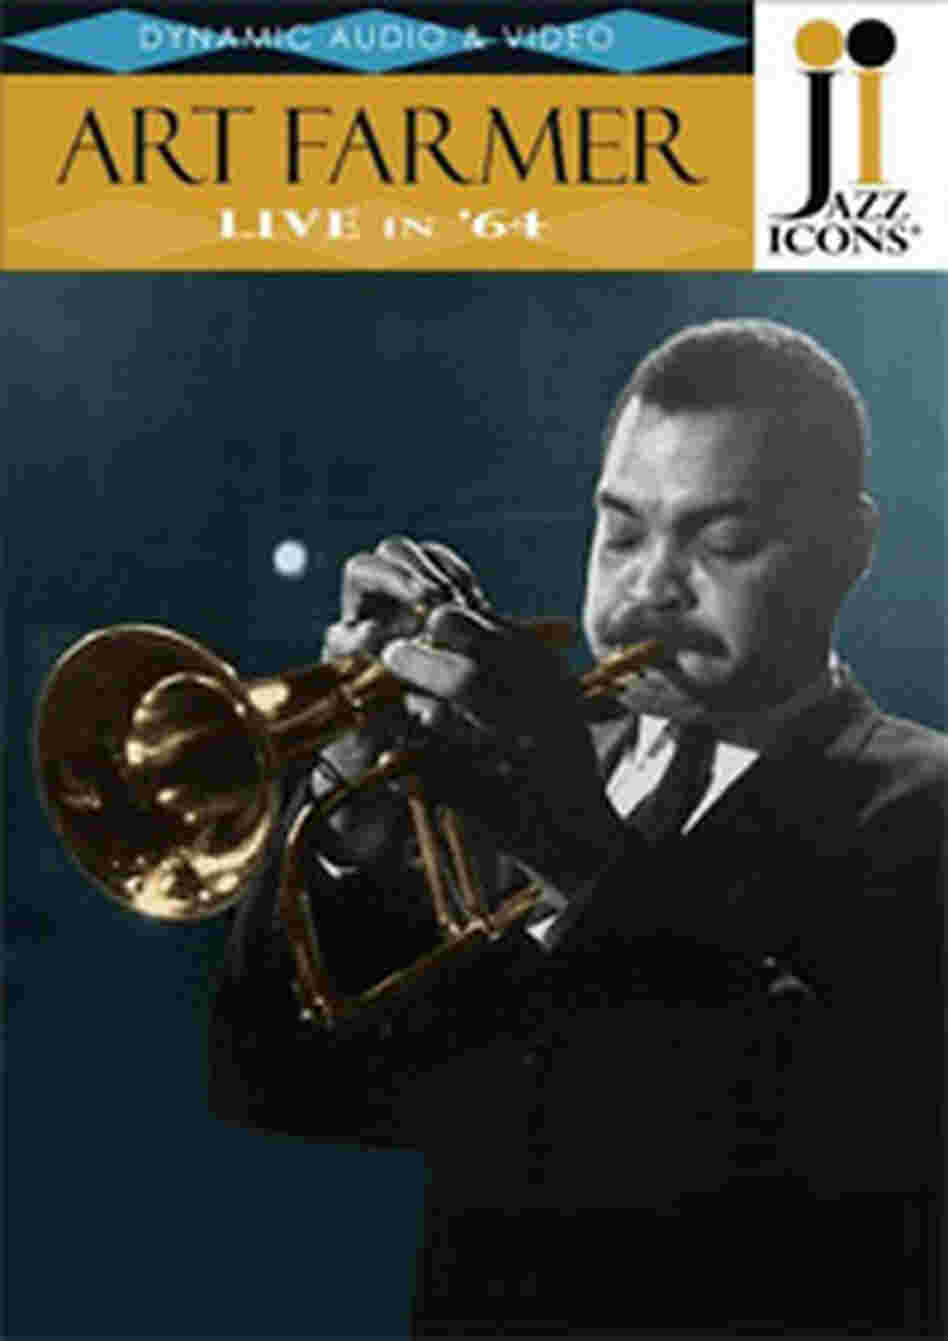 Art Farmer Jazz Icons